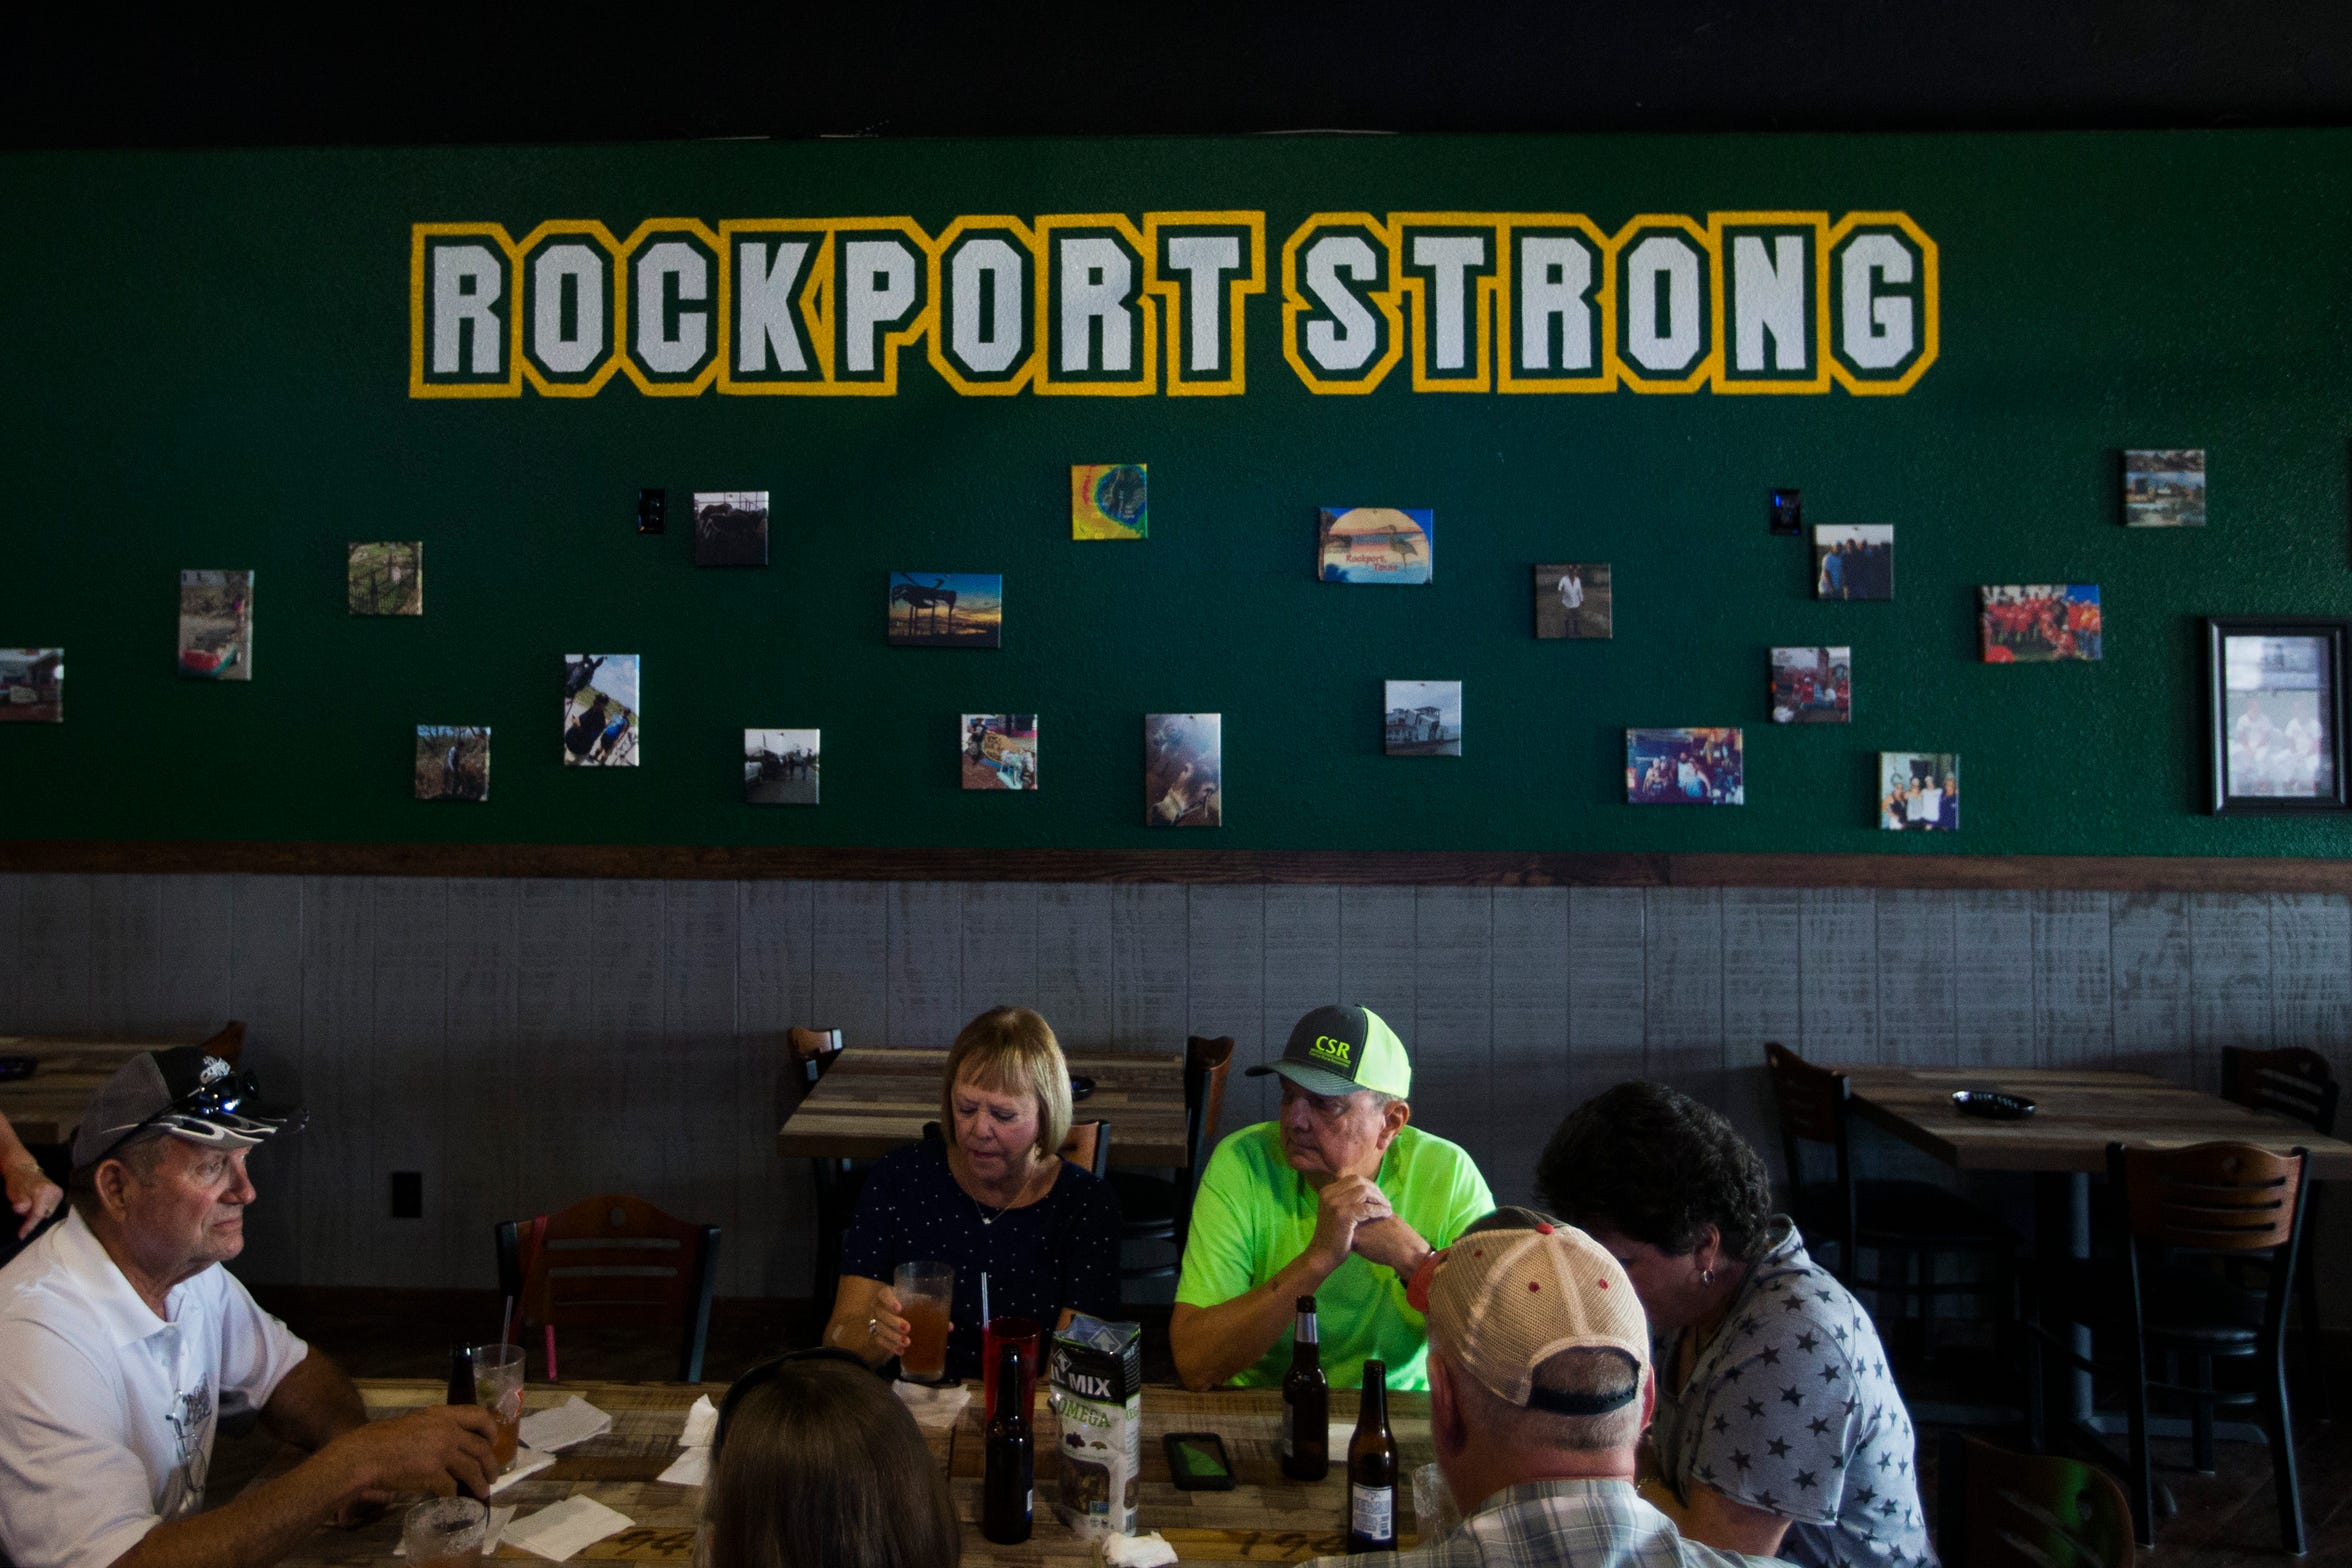 People enjoy drinks at the Rockbottom bar in Rockport, Texas.